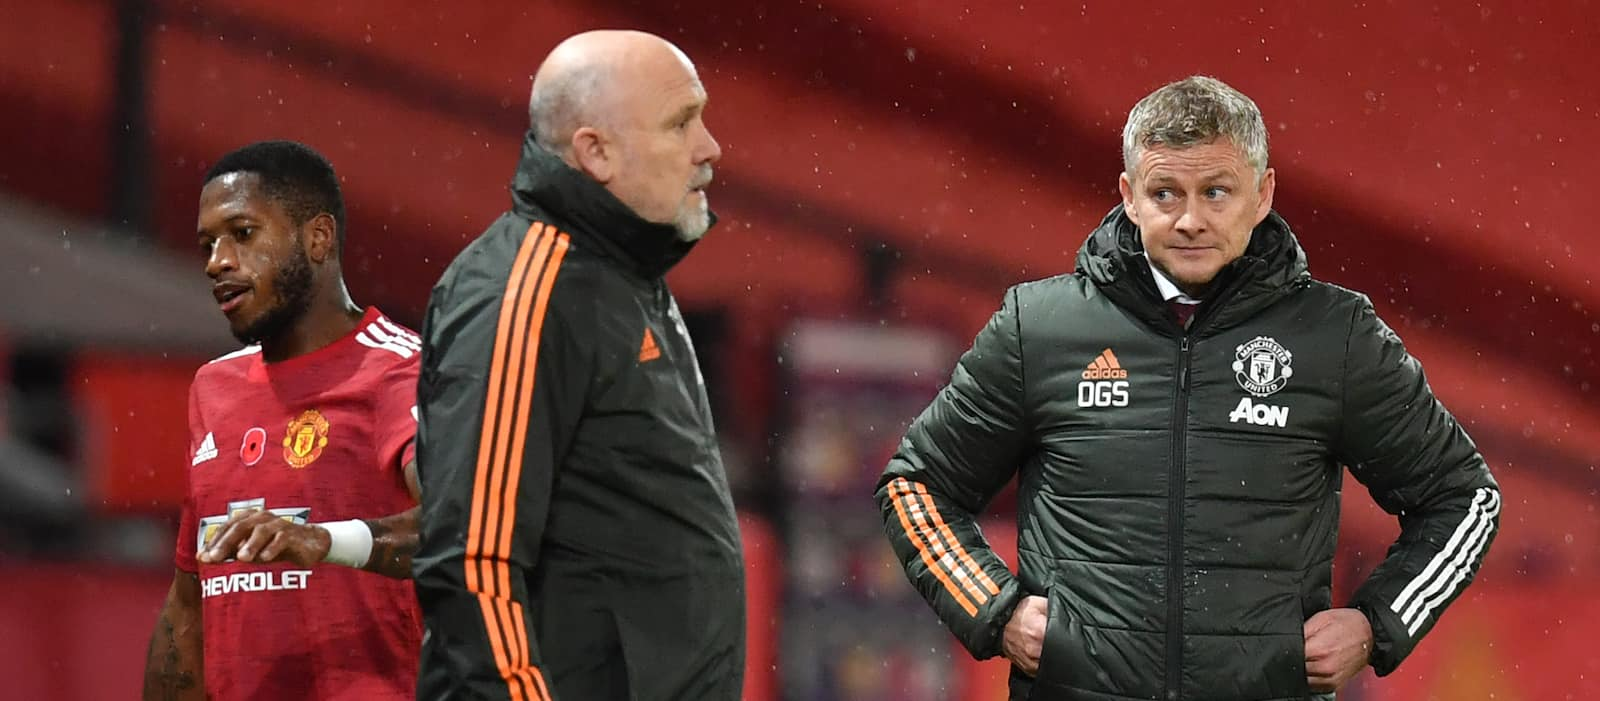 Manchester United players raise doubts over Ole Gunnar Solskjaer